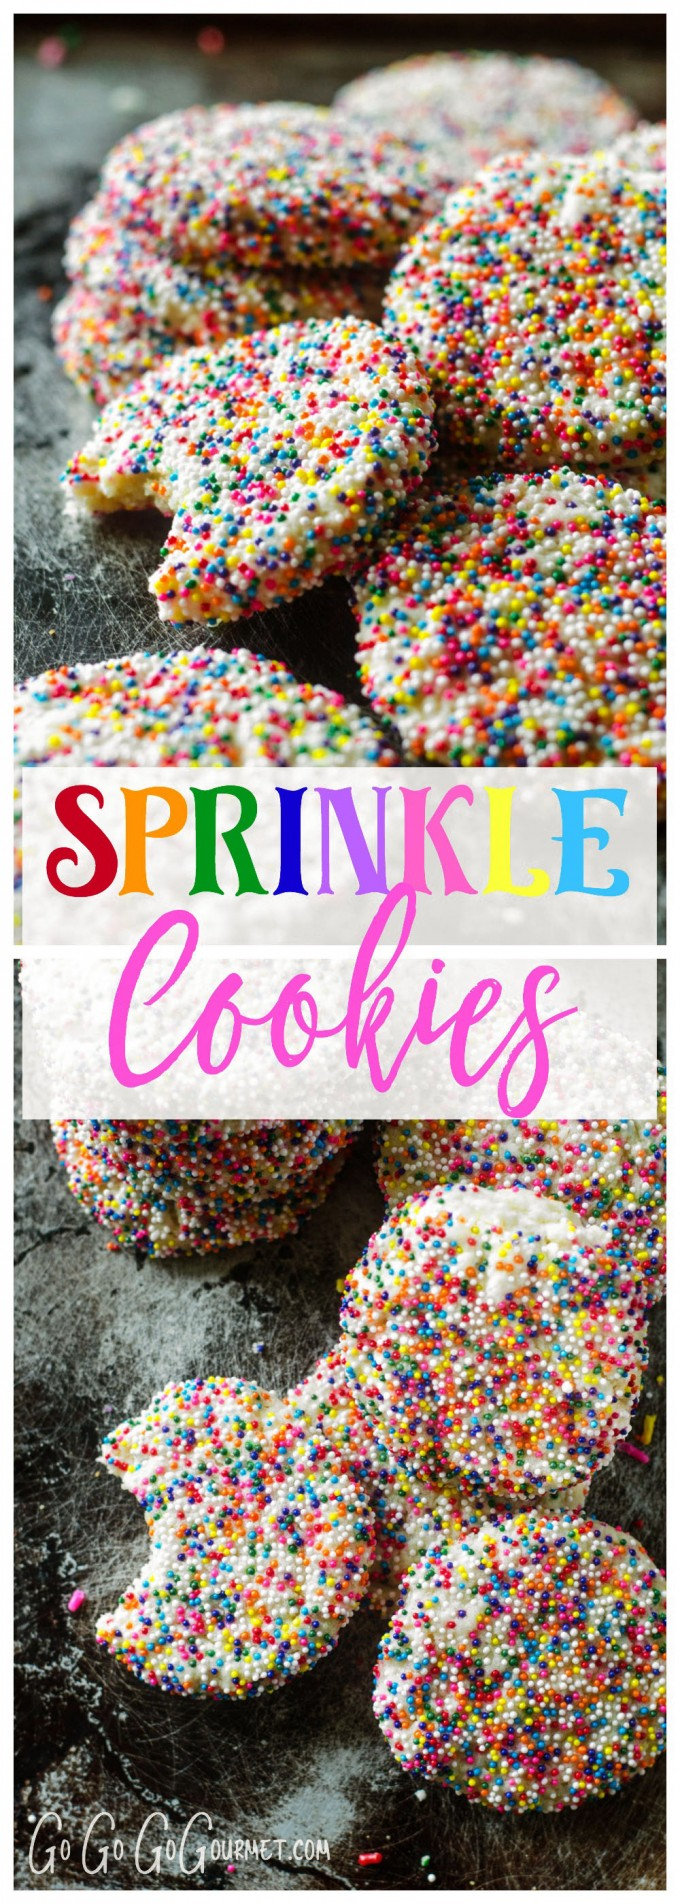 You can never have too many sprinkles! | Sprinkle Cookies